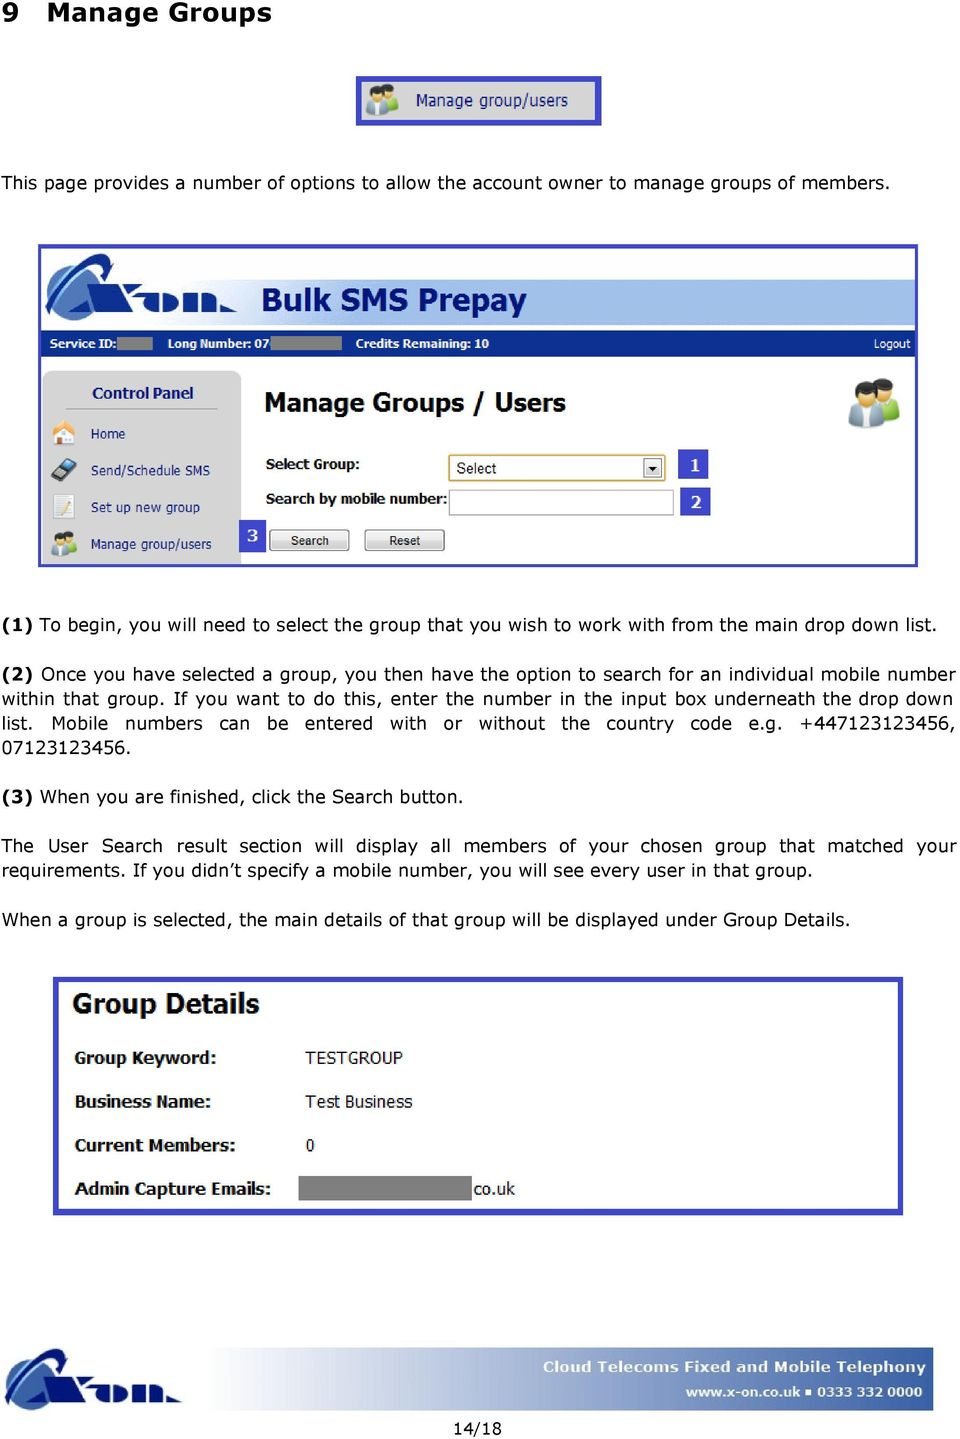 (2) Once you have selected a group, you then have the option to search for an individual mobile number within that group.